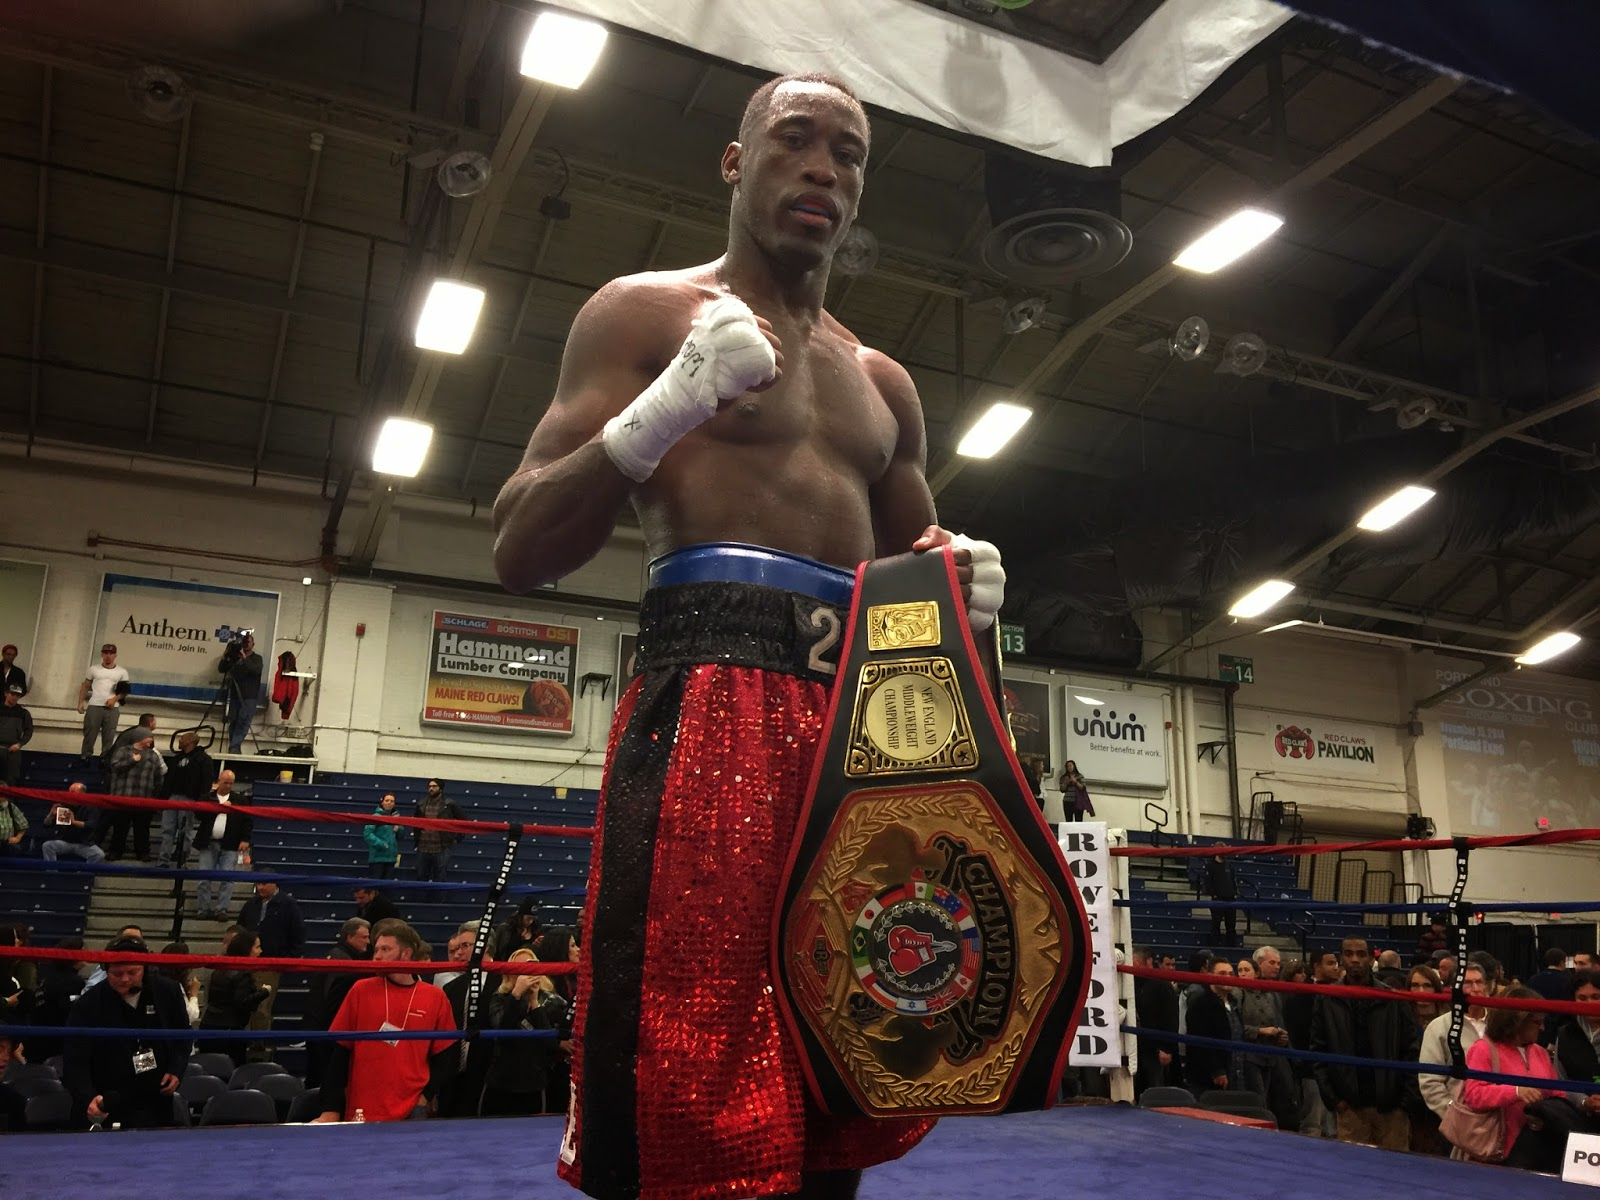 dcc99fc00cccc The Haitian Sensation is the face of Maine boxing